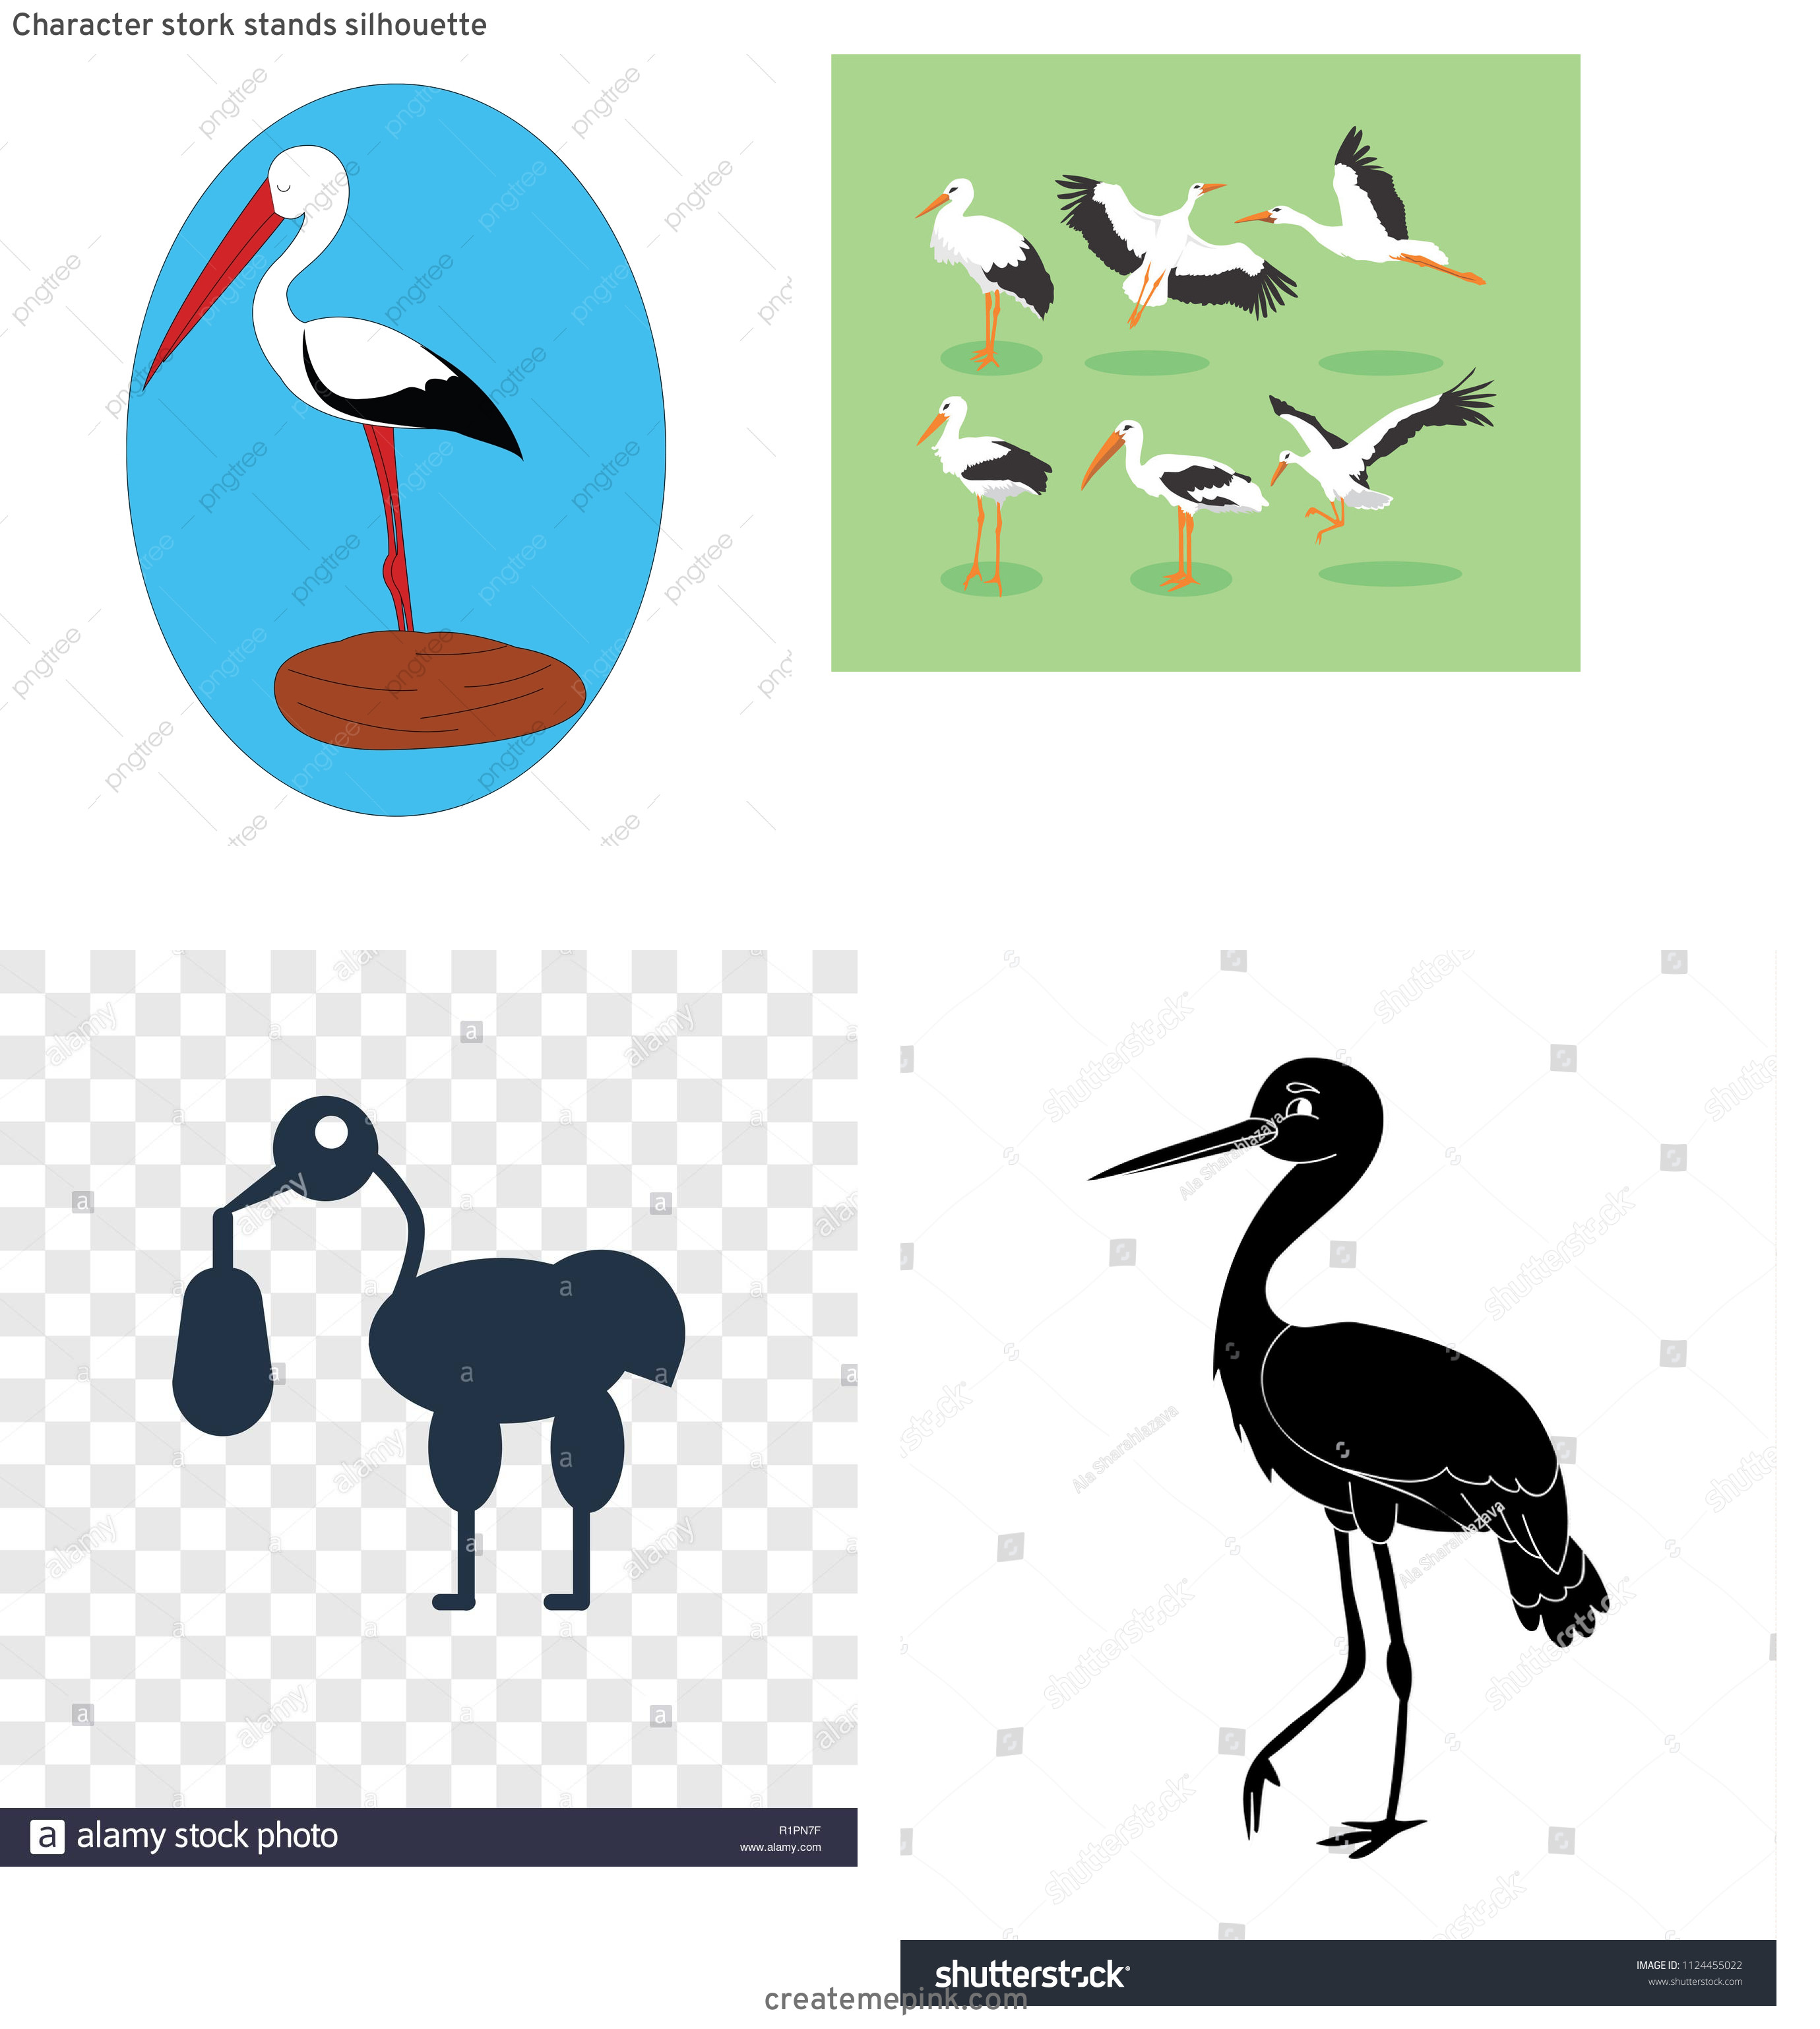 Cartoon Stork Vector Silhouette: Character Stork Stands Silhouette